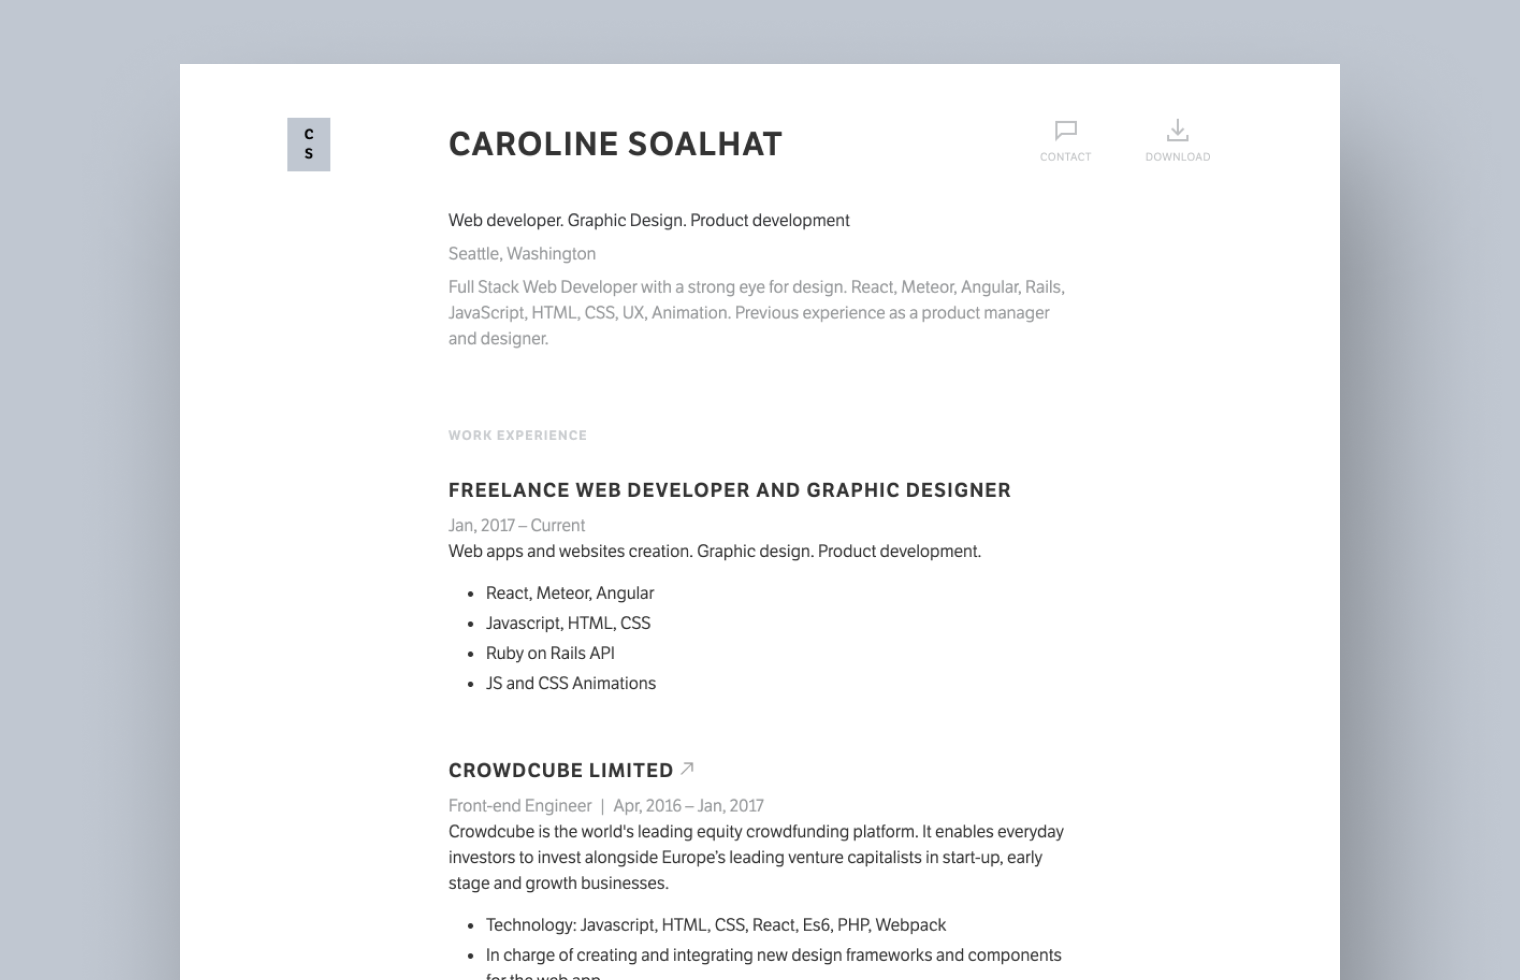 Web Developer Resume example built with Standard Resume